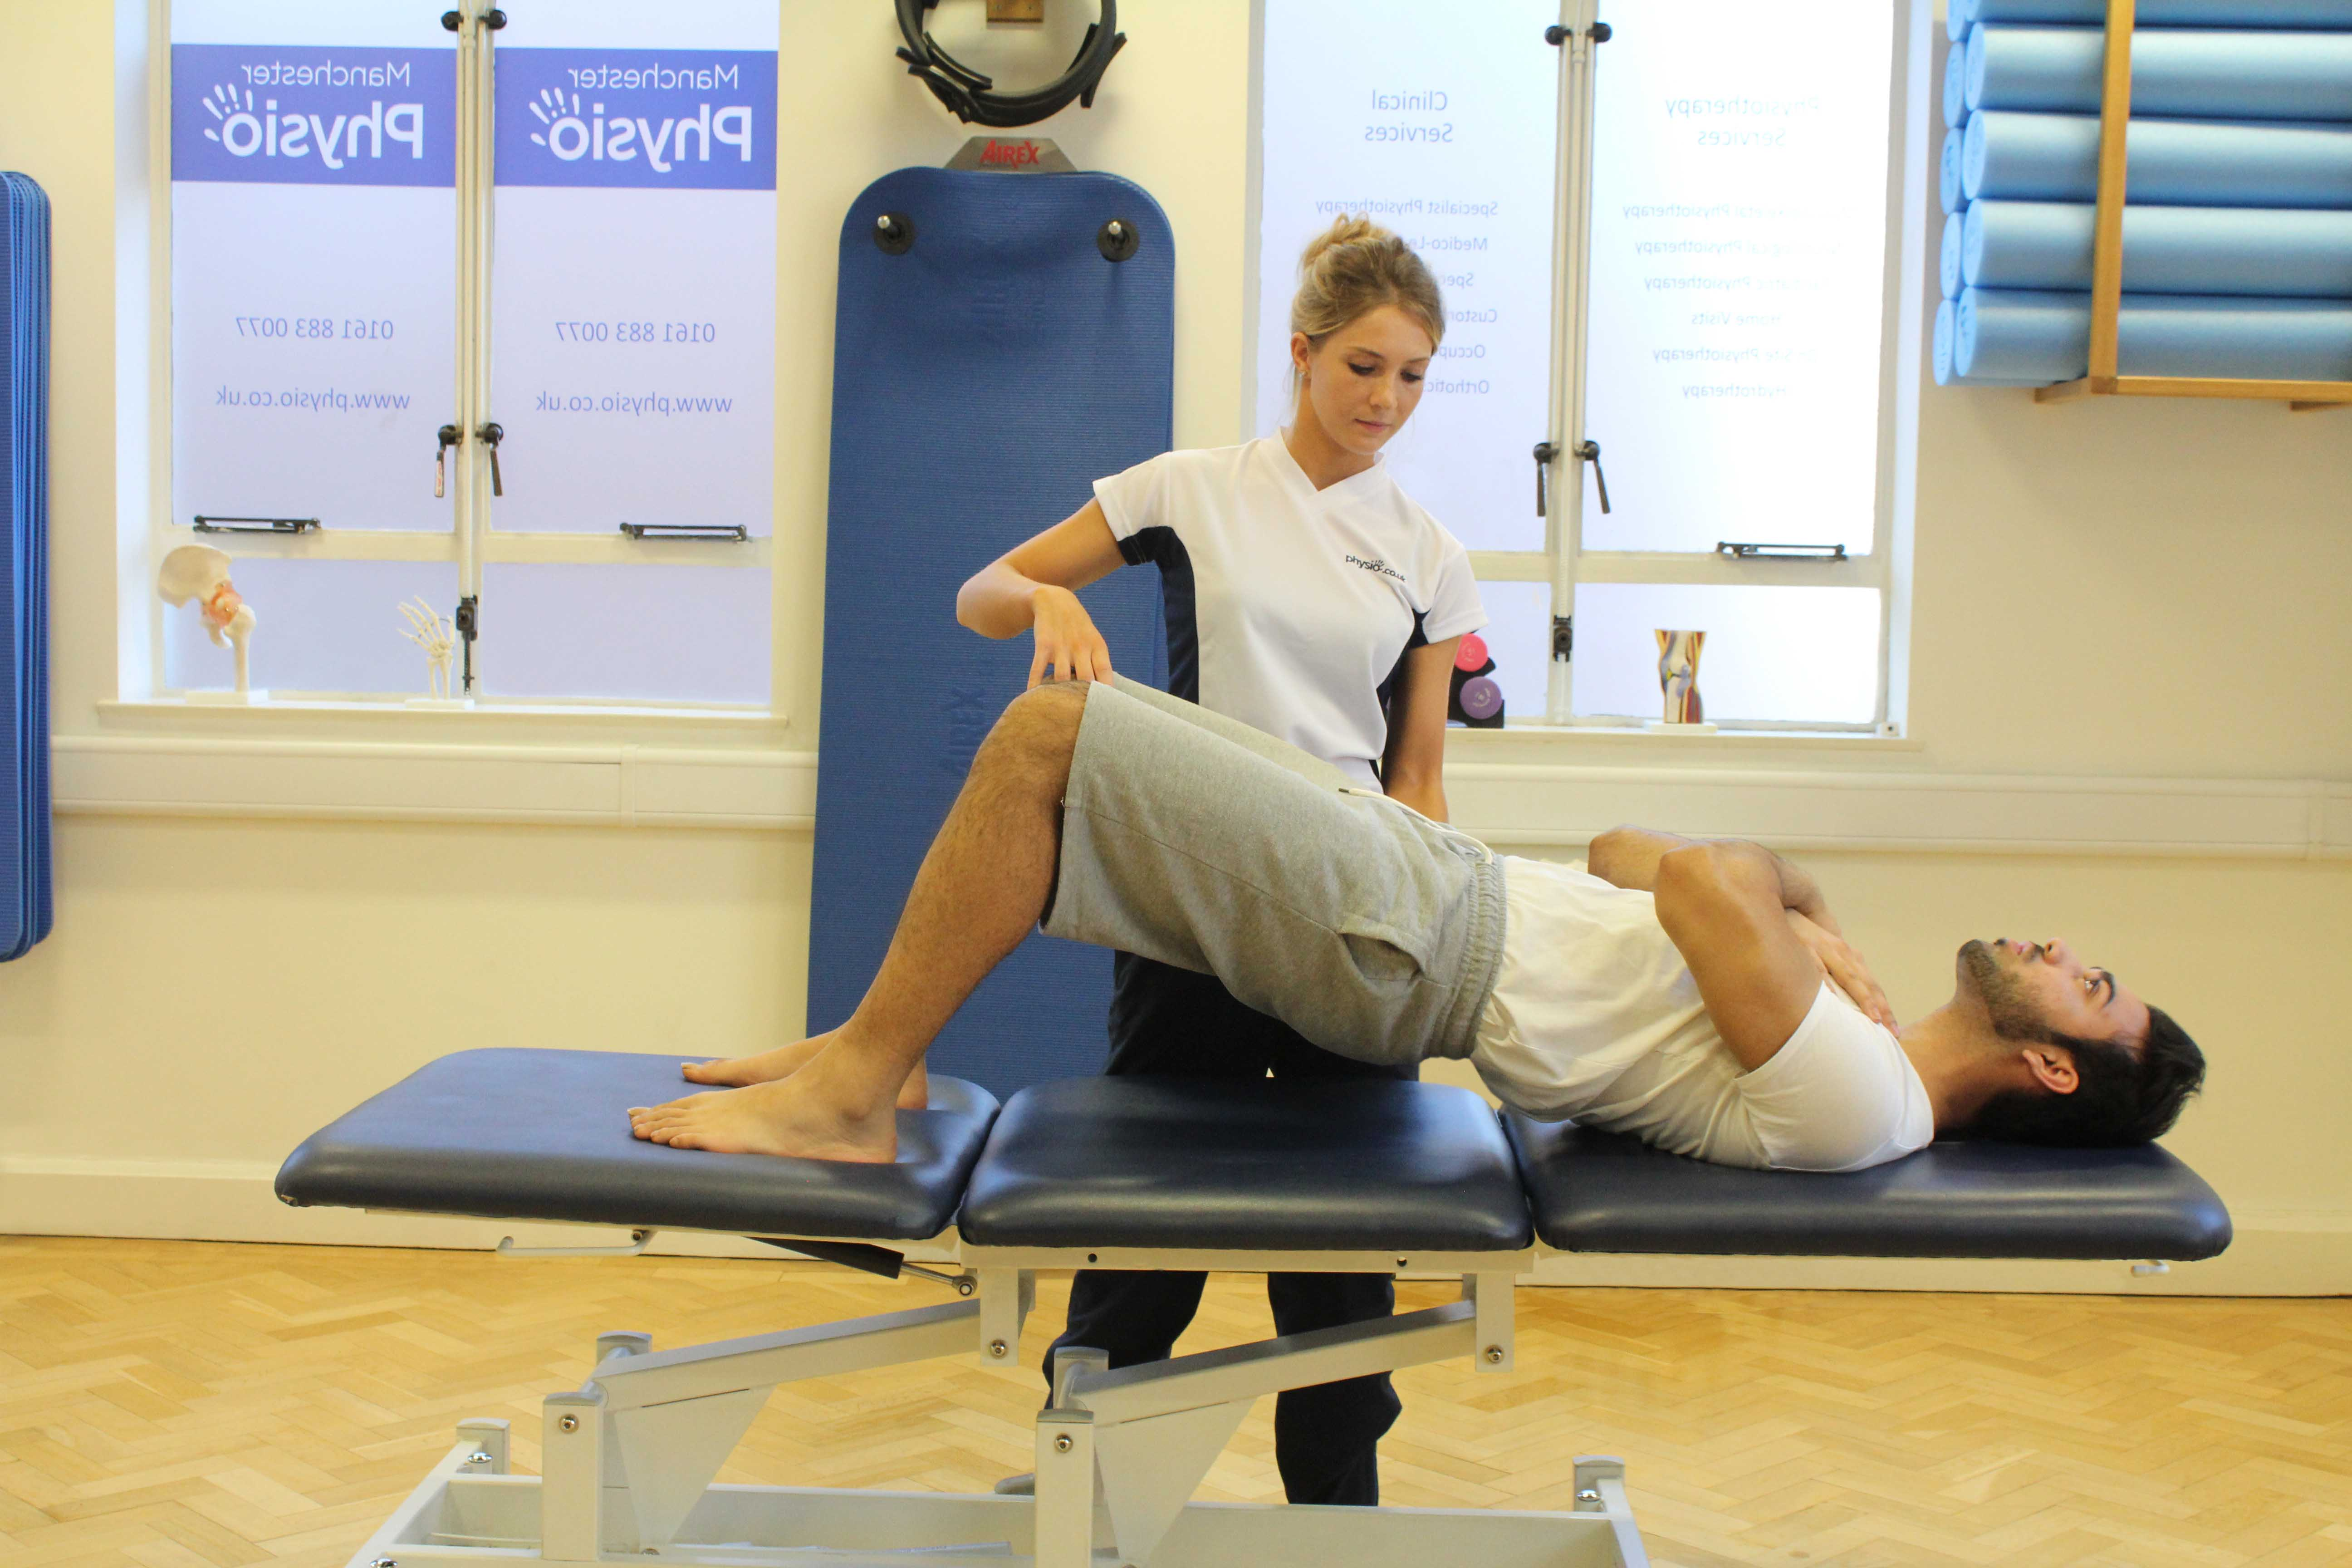 Strengthening exercises for the pelvic muscles supervised by MSK therapist